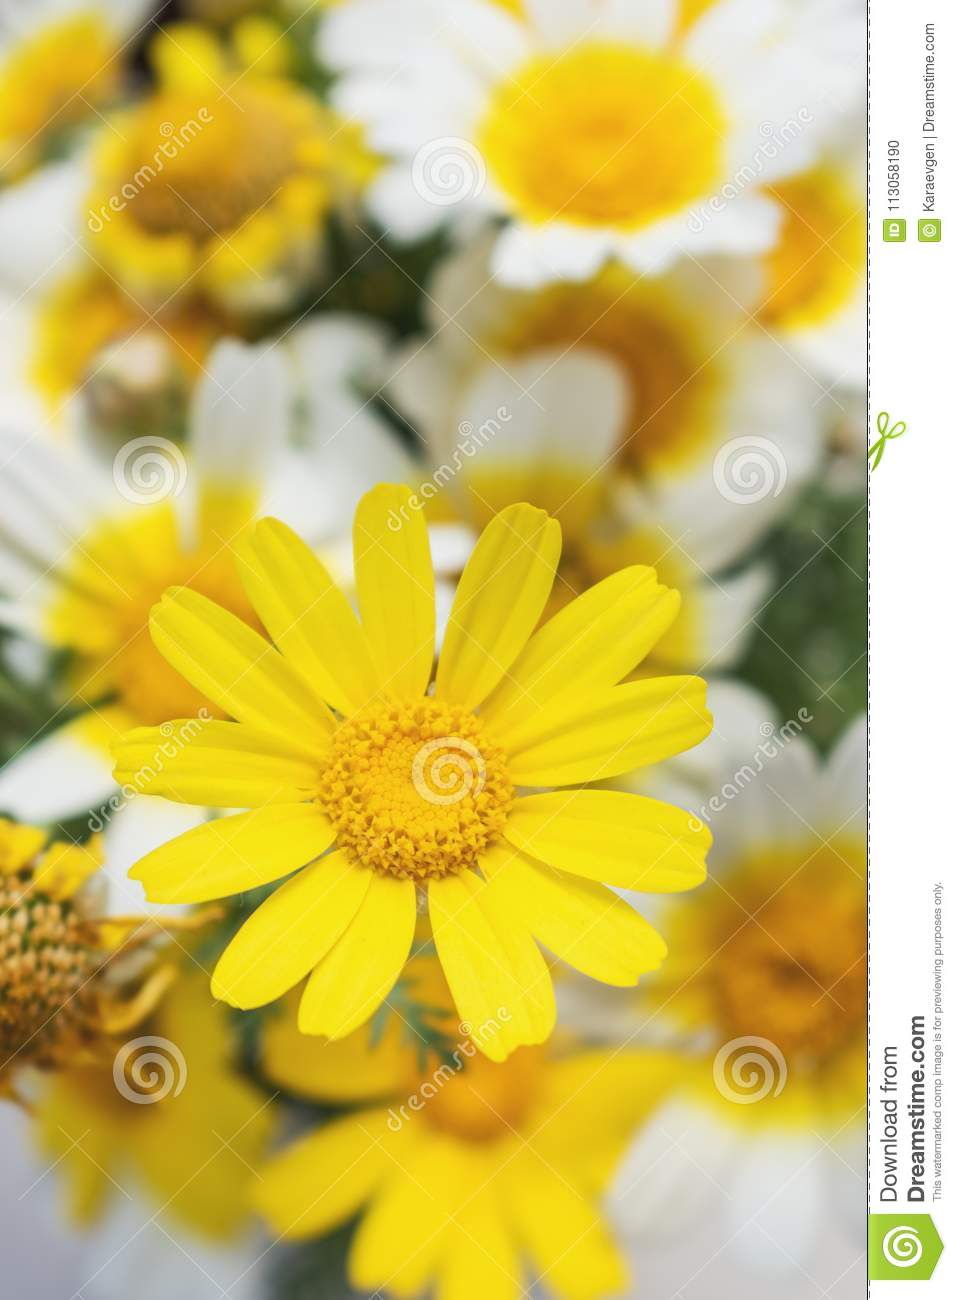 White And Yellow Daisies Flowers In Sun Light Stock Photo Image